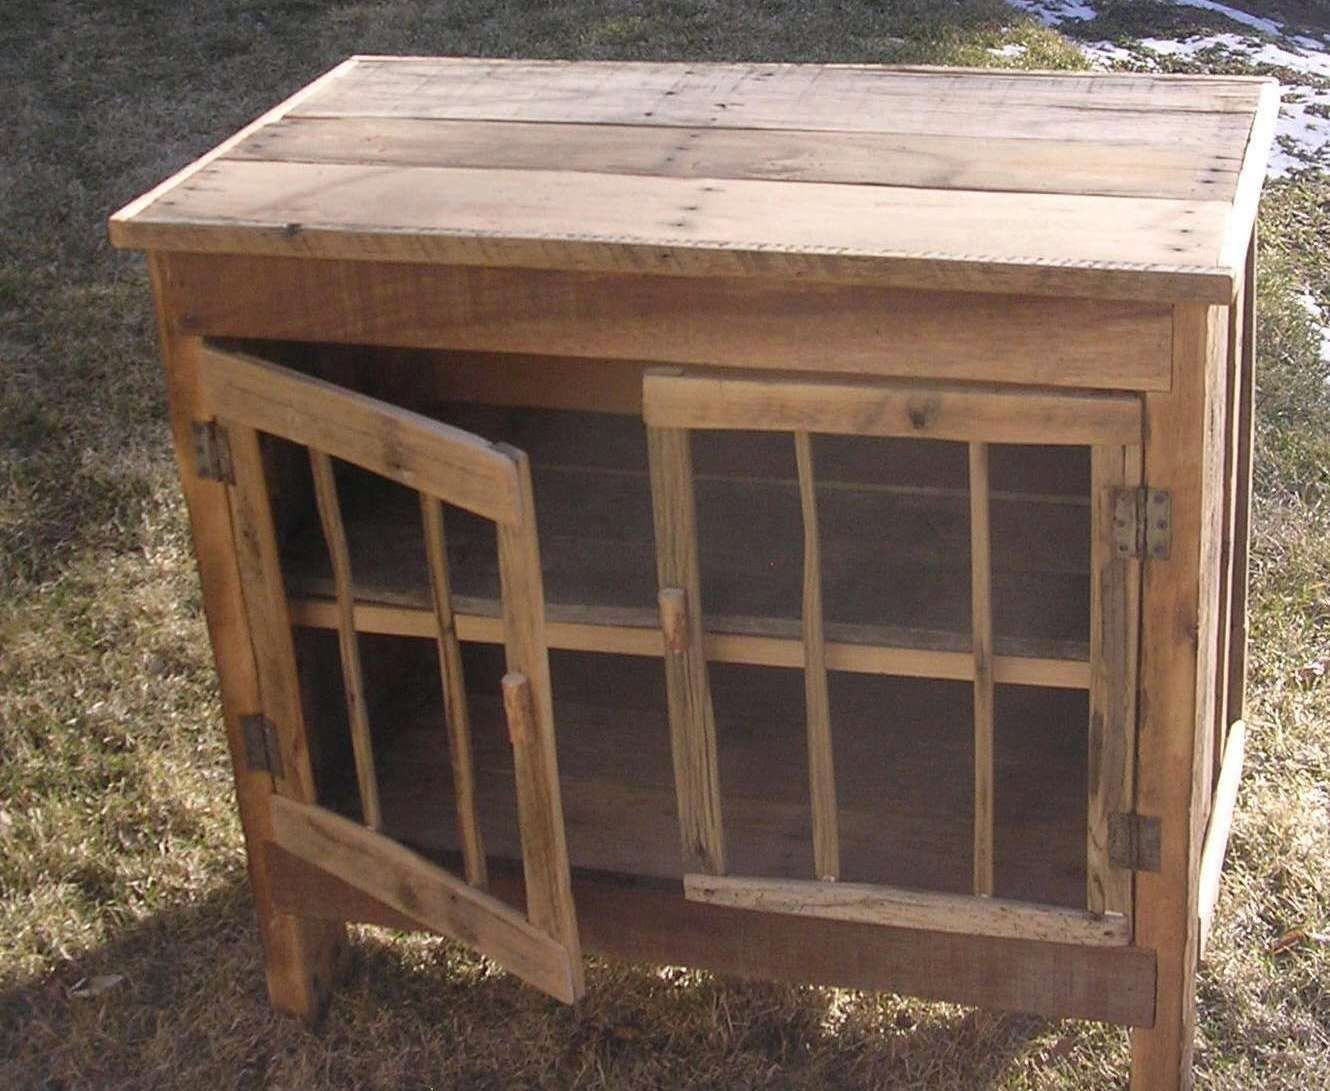 Pallet Project - Pallet Stand With Doors.  #pallets  #palletproject